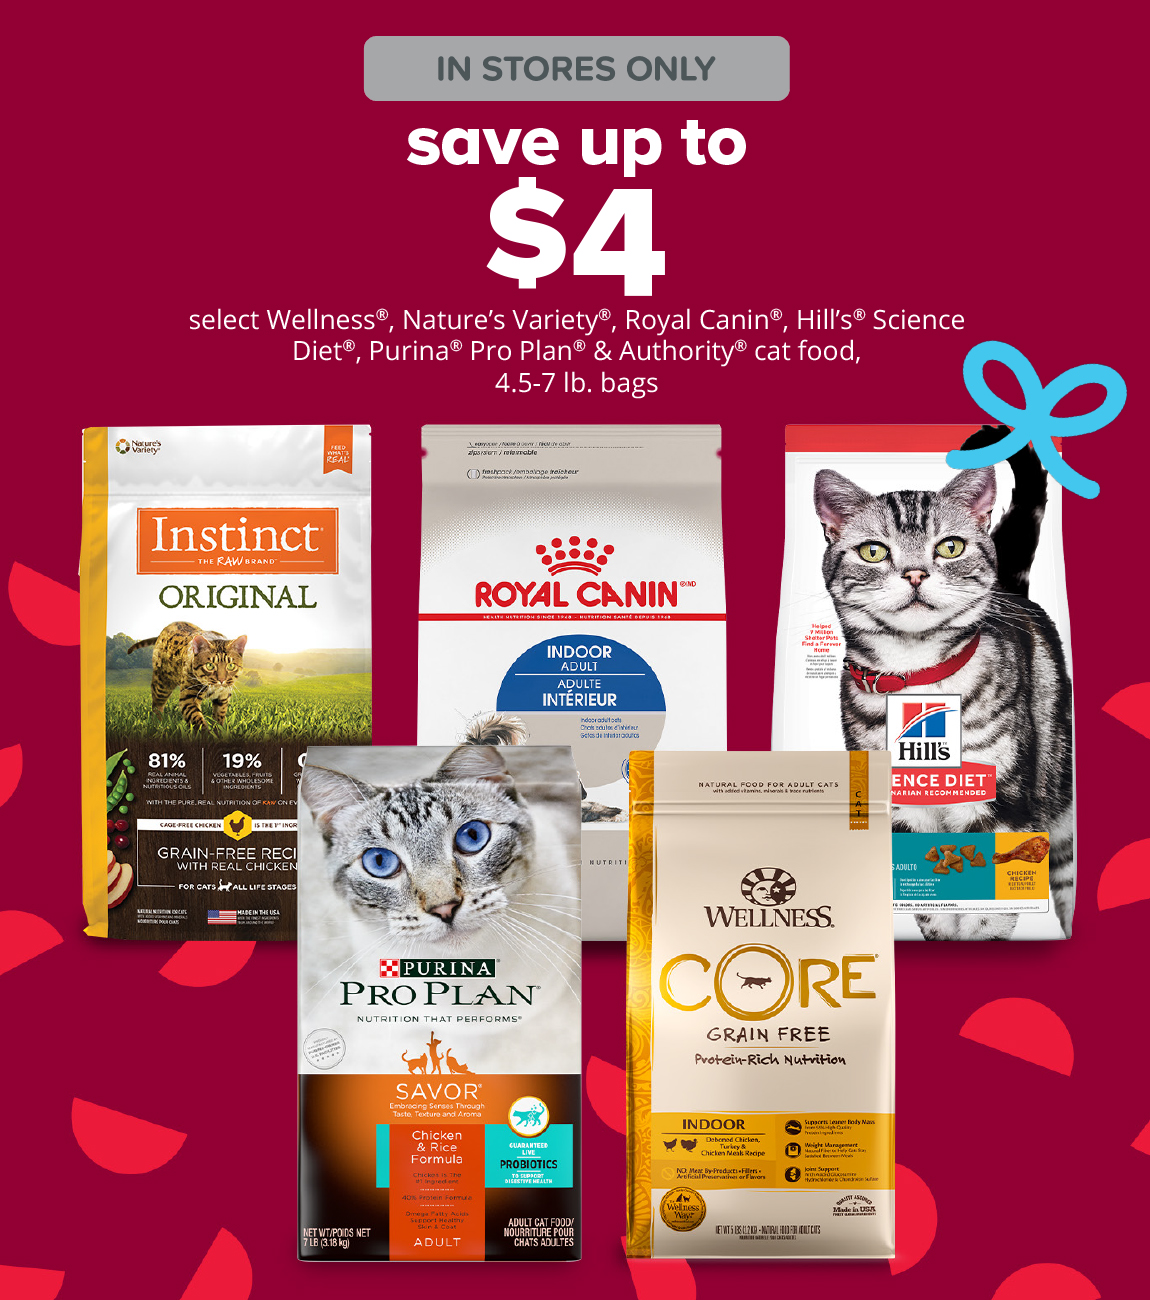 save up to $4 select Wellness®, Nature's Variety®, Royal Canin®, Hill's® Science Diet®, Purina® Pro Plan® & Authority® cat food, 4.5-7 lb. bags